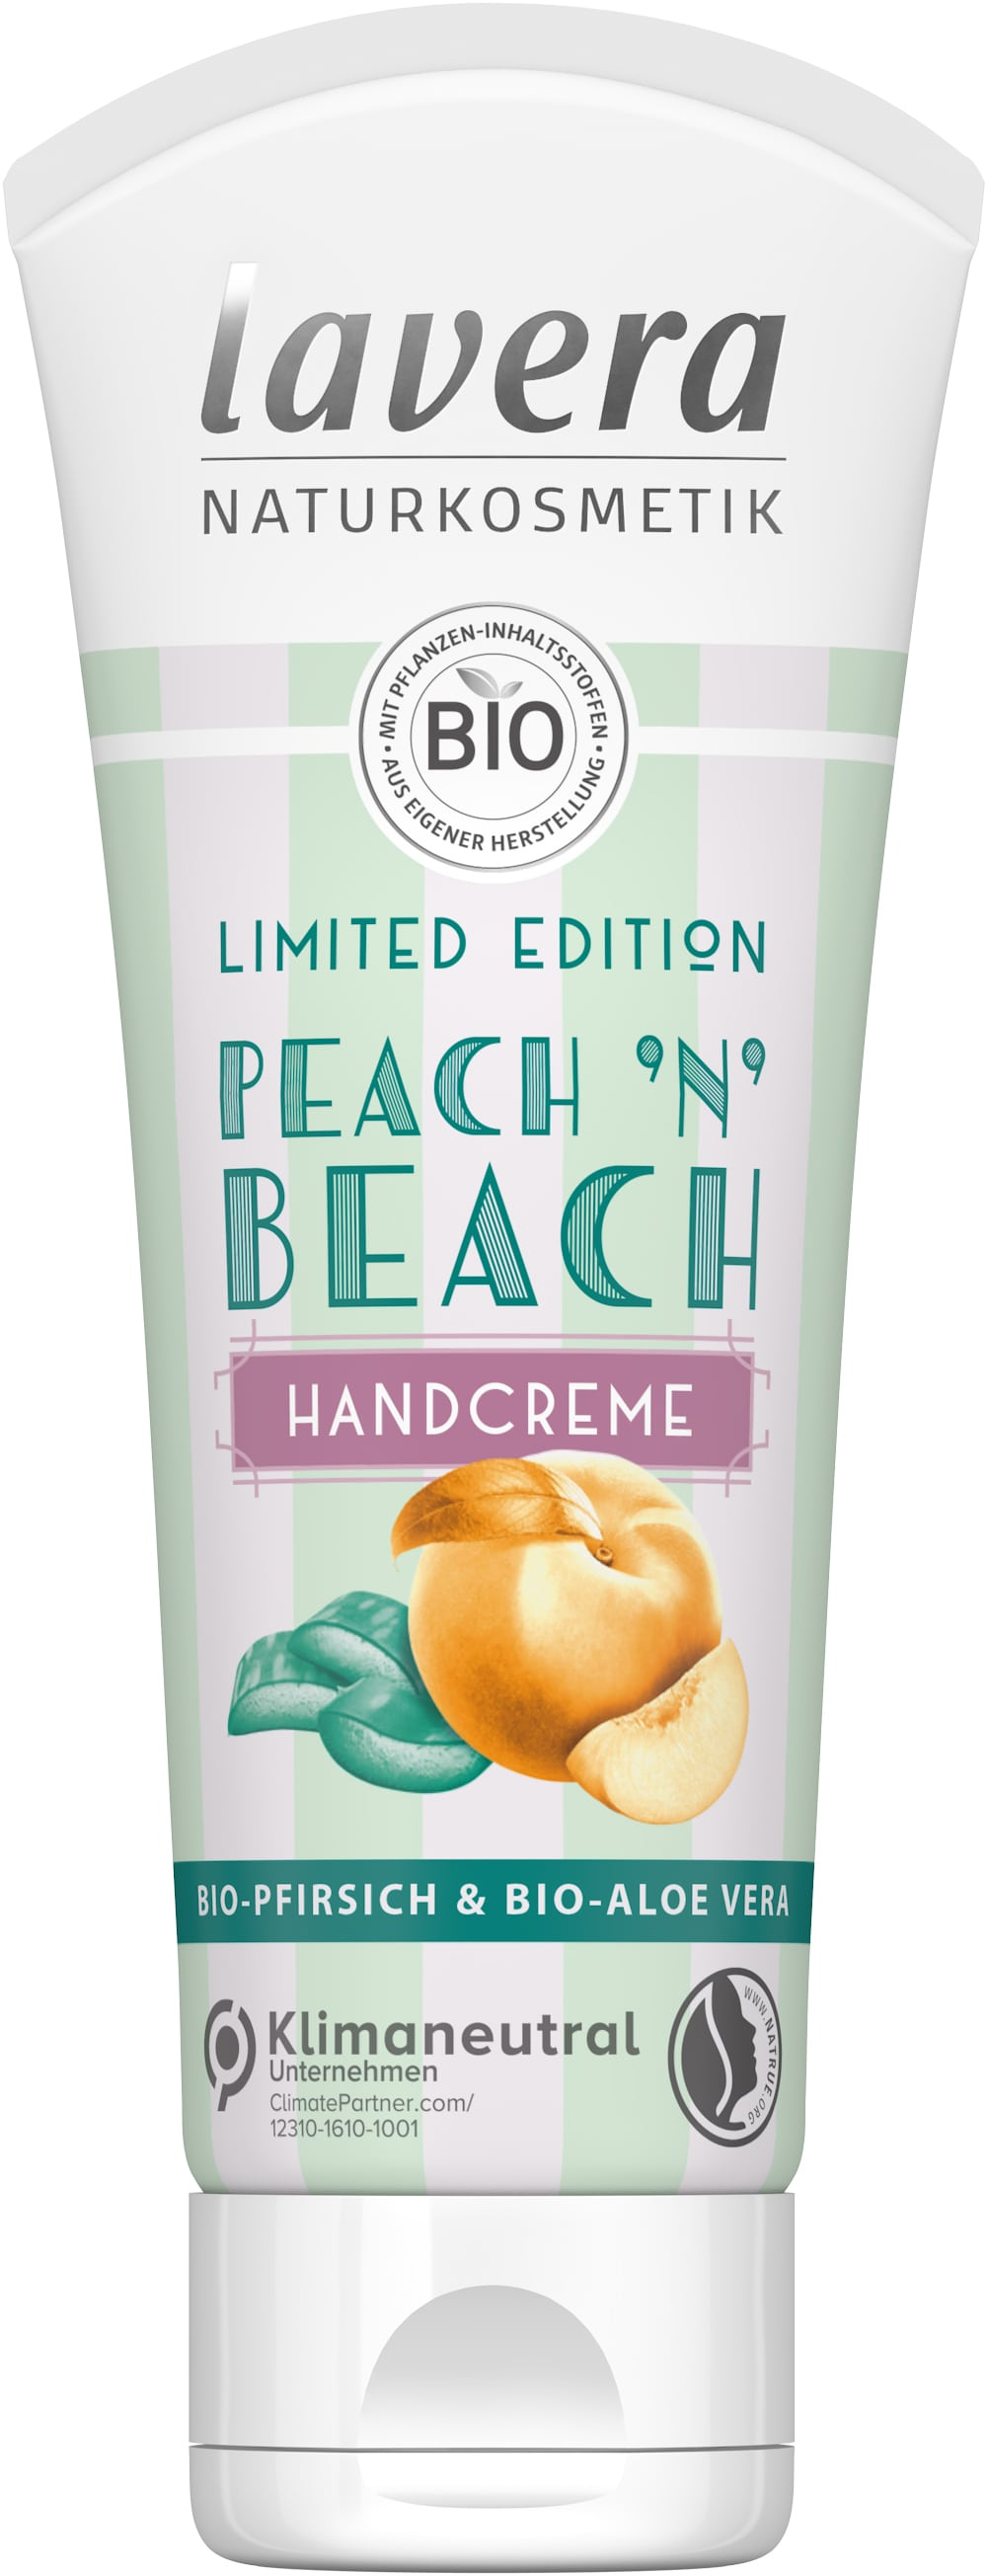 Peach 'n' Beach Handcreme (Limited Edition)